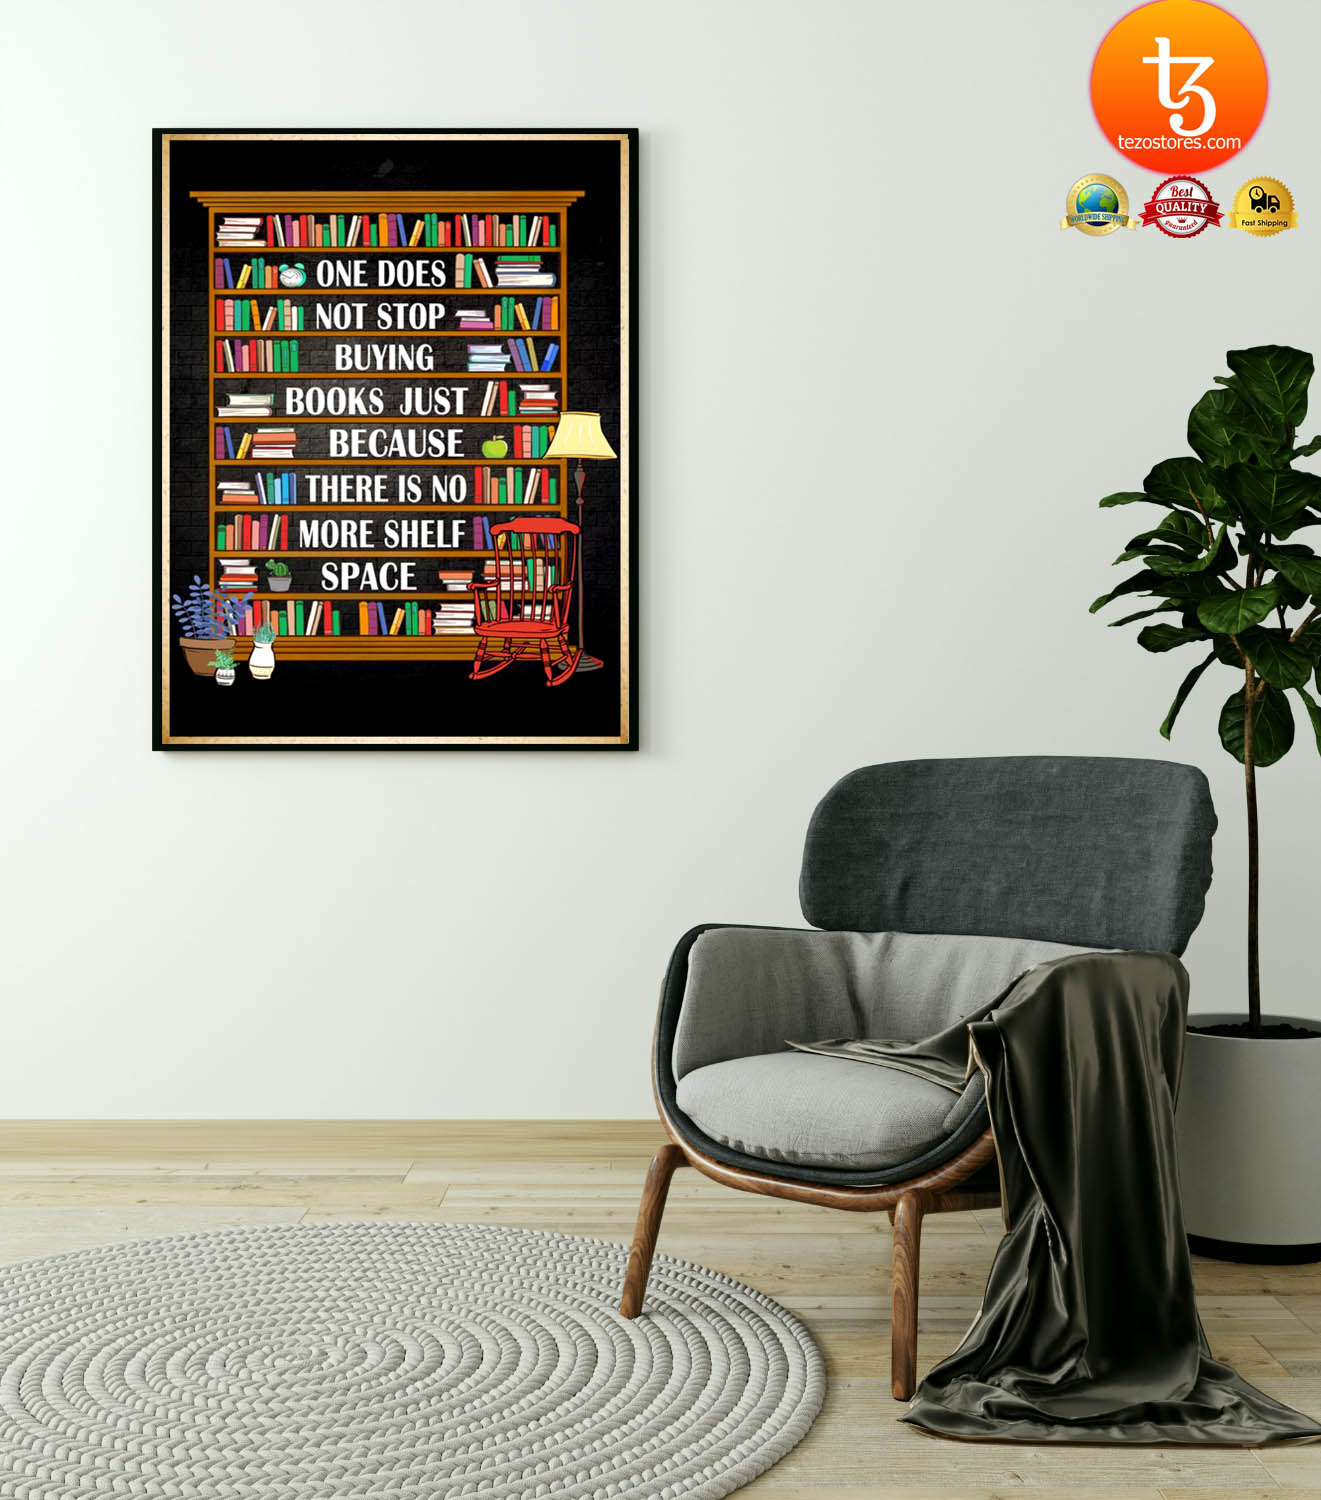 One does not stop buying books just because there is no more shelf space poster 2